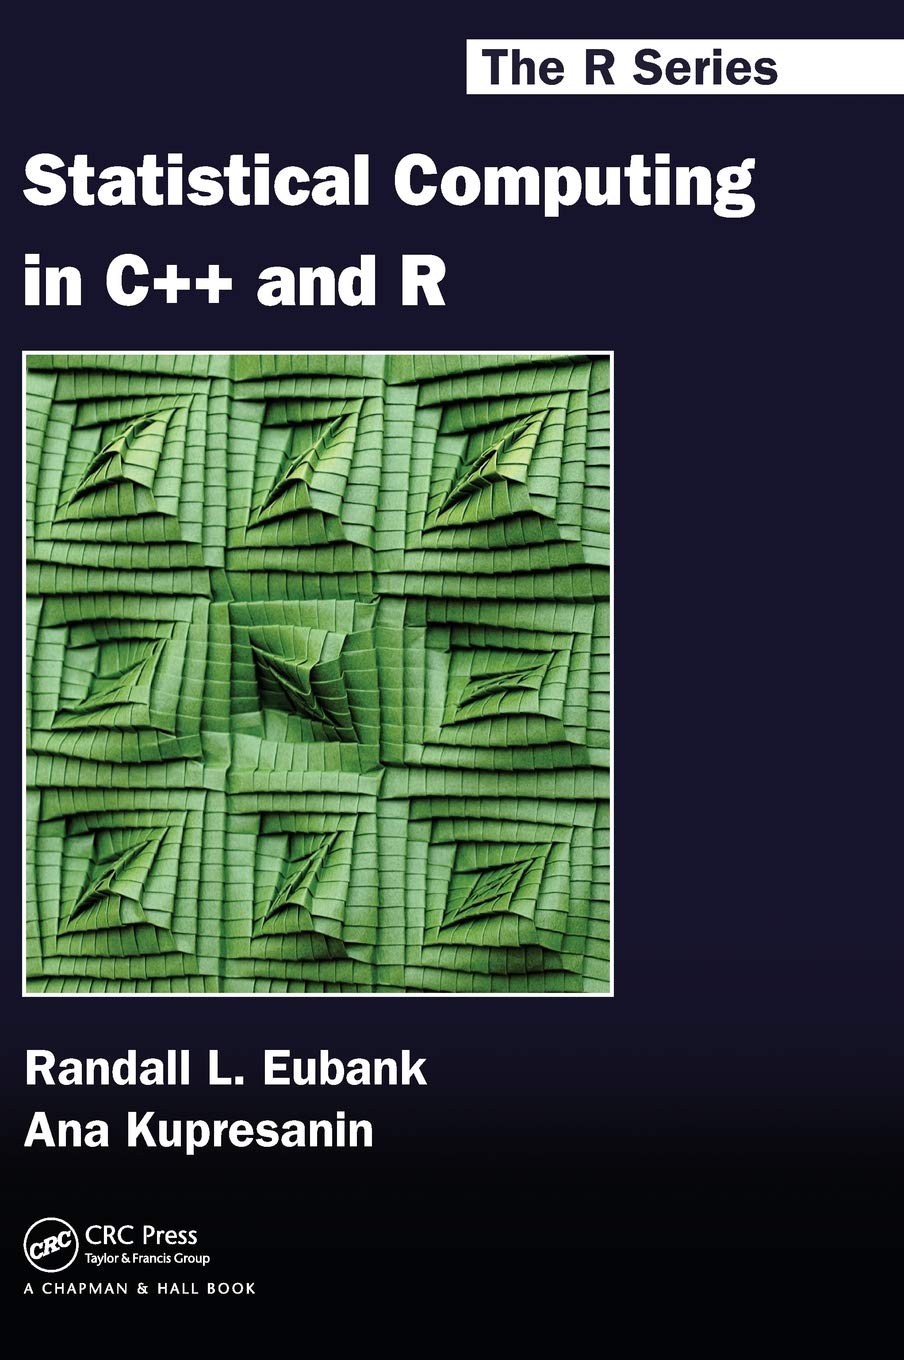 Statistical Computing in C++ and R (Chapman & Hall/CRC: The R Series